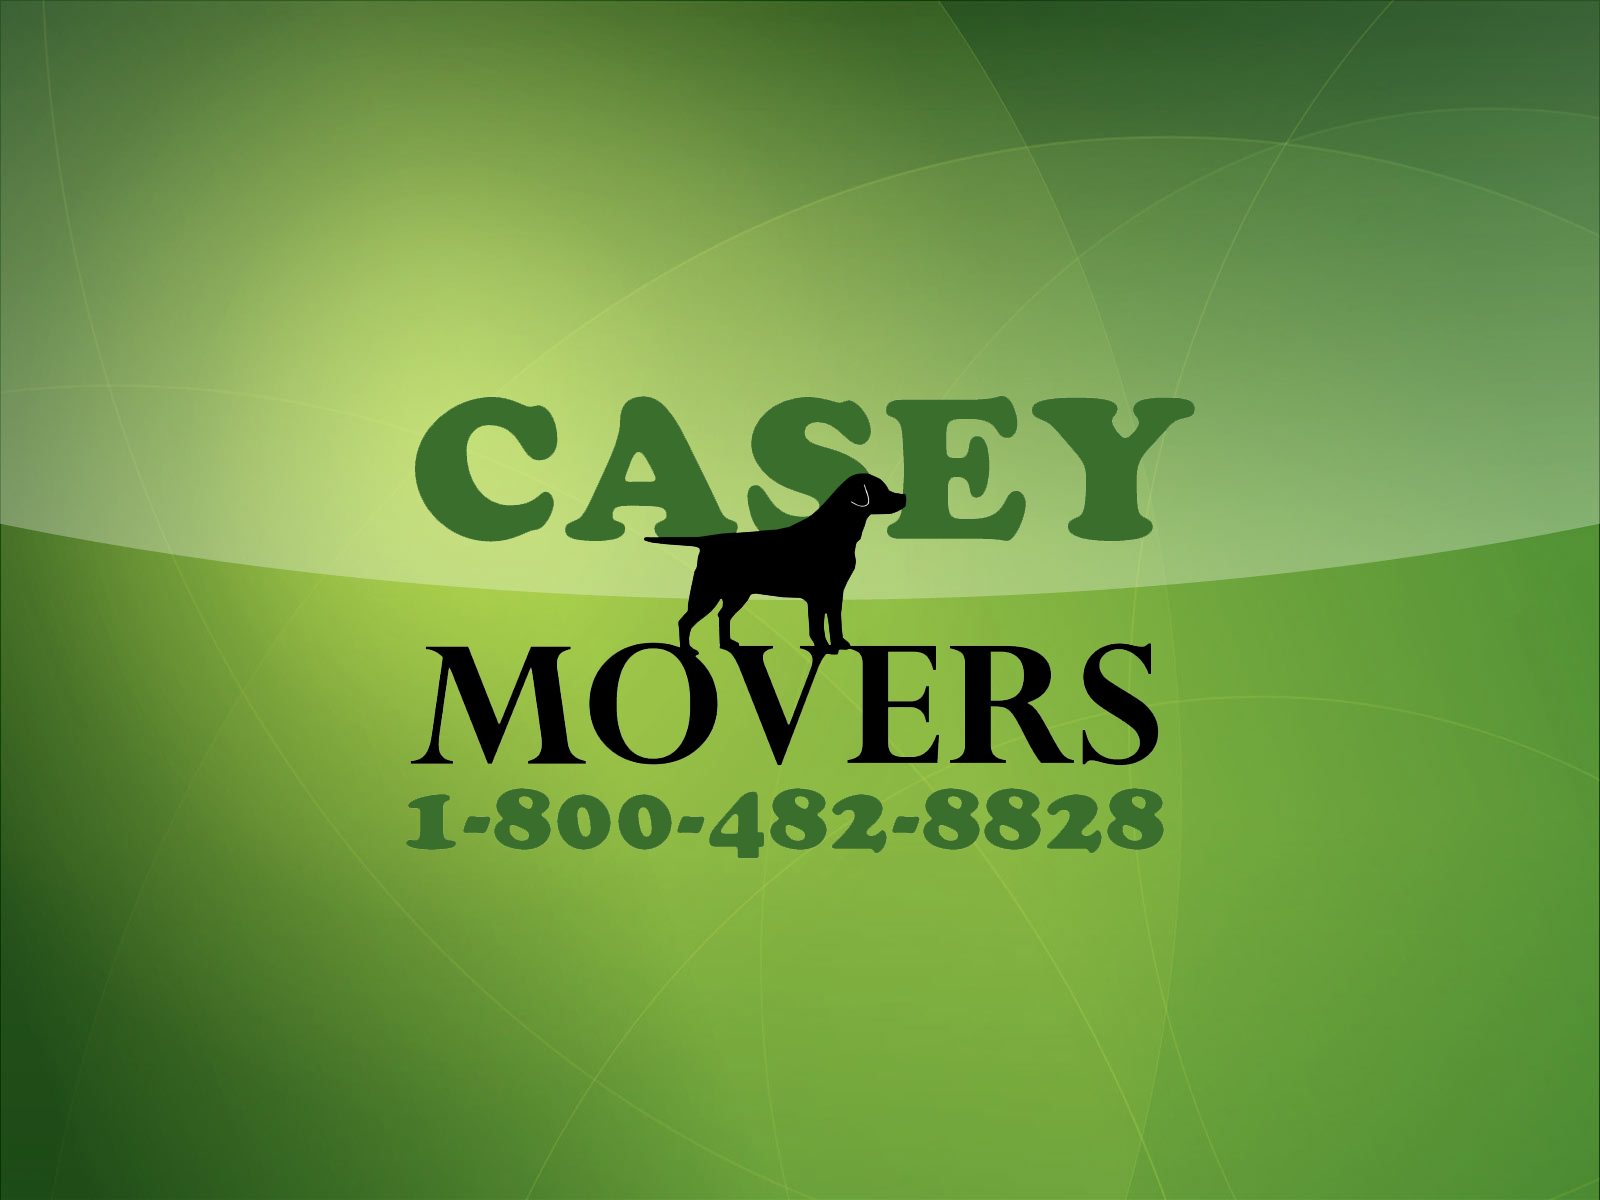 The Casey Movers Desktop Background